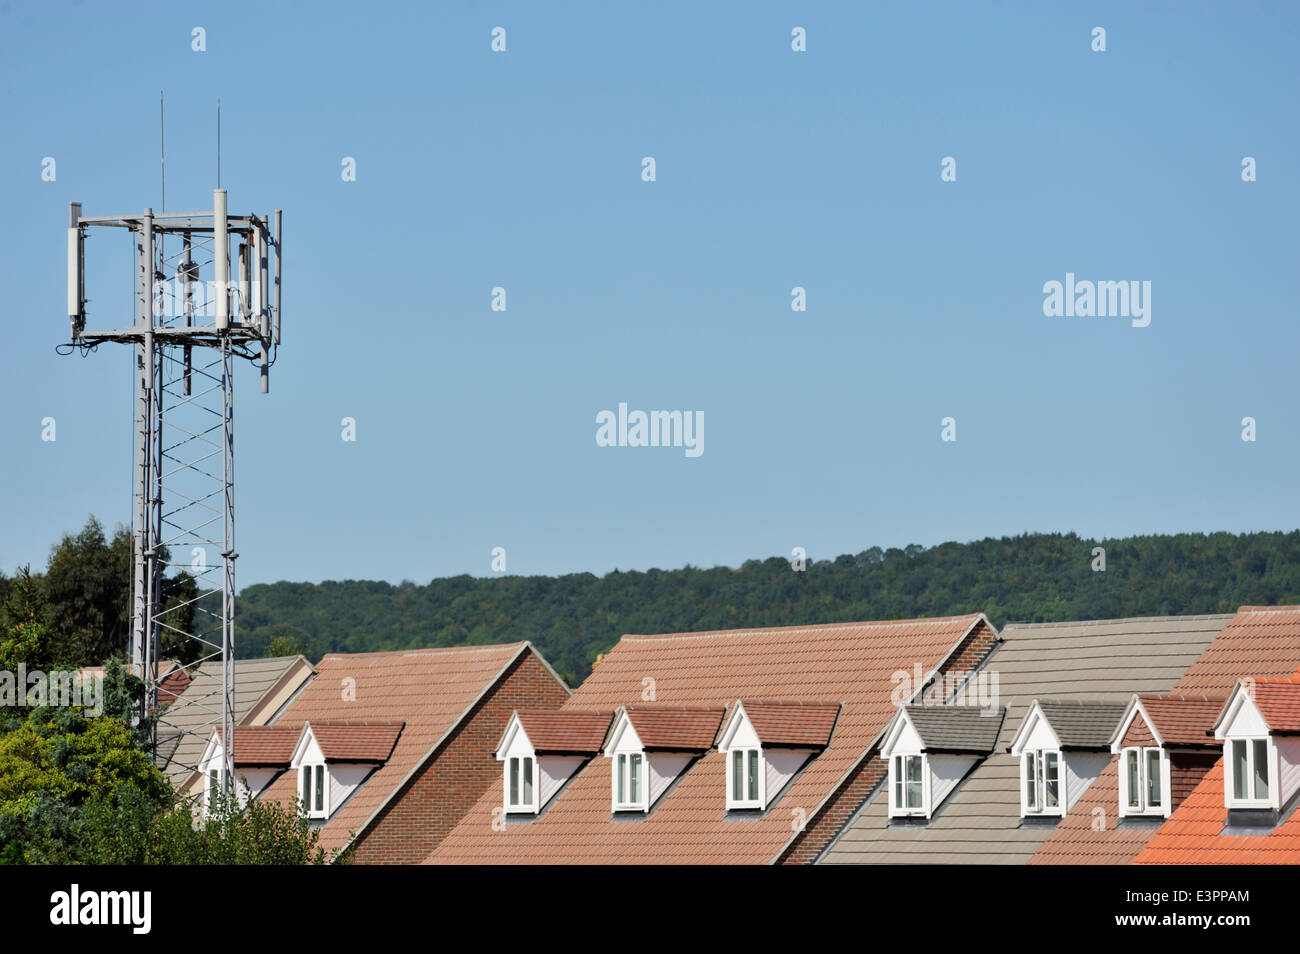 Mobile phone mast in close proximity to new homes in Petersfield, Hampshire Stock Photo